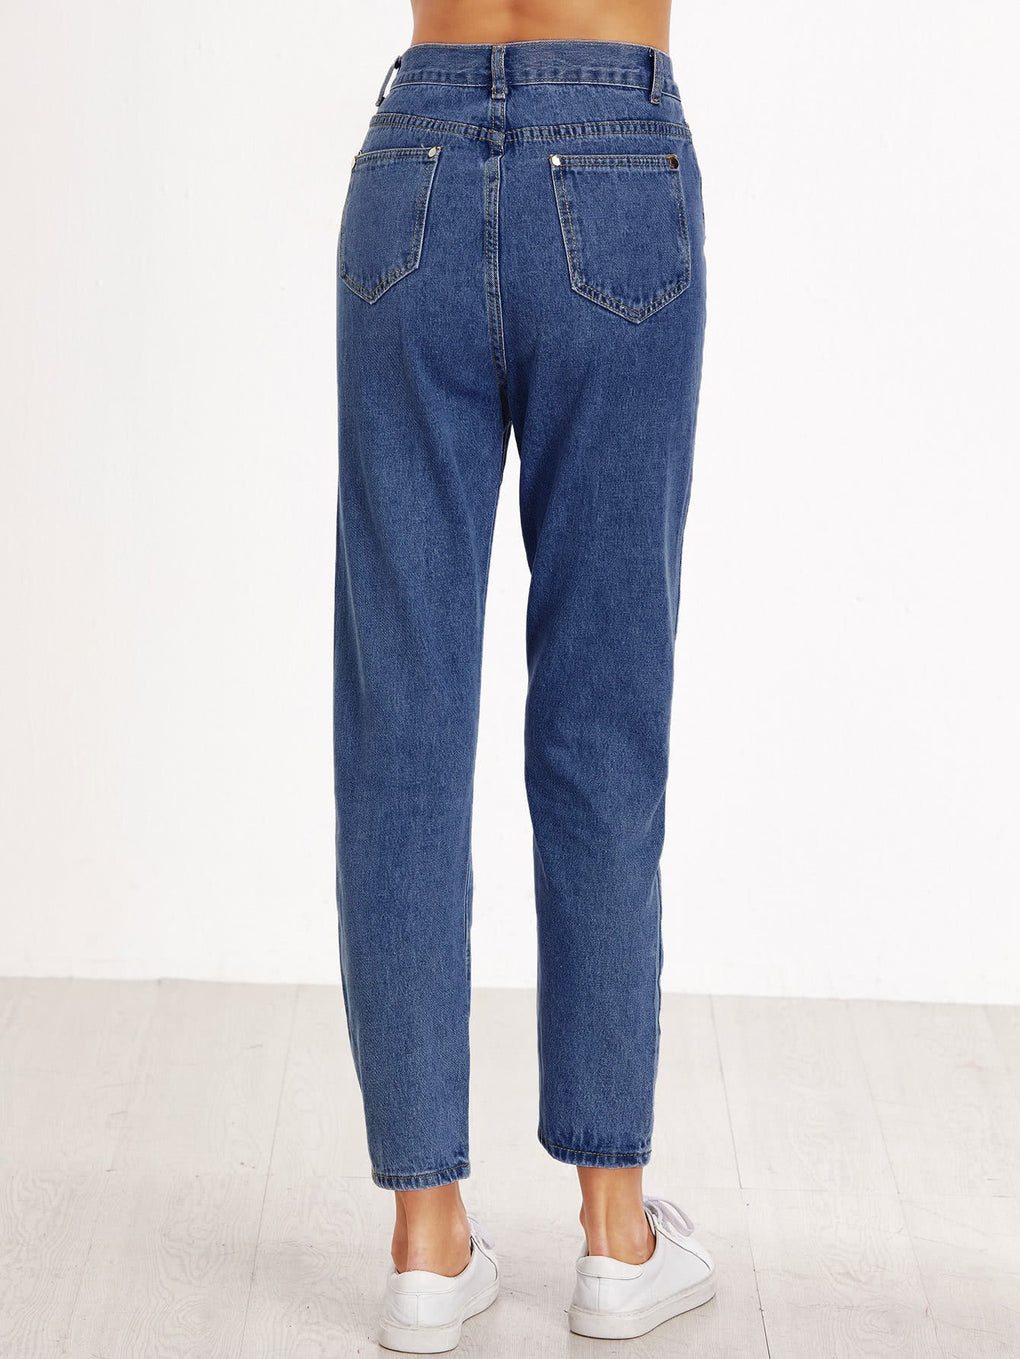 Straight Leg Mom Jeans - Danish Fashion & Living Online Store SALE